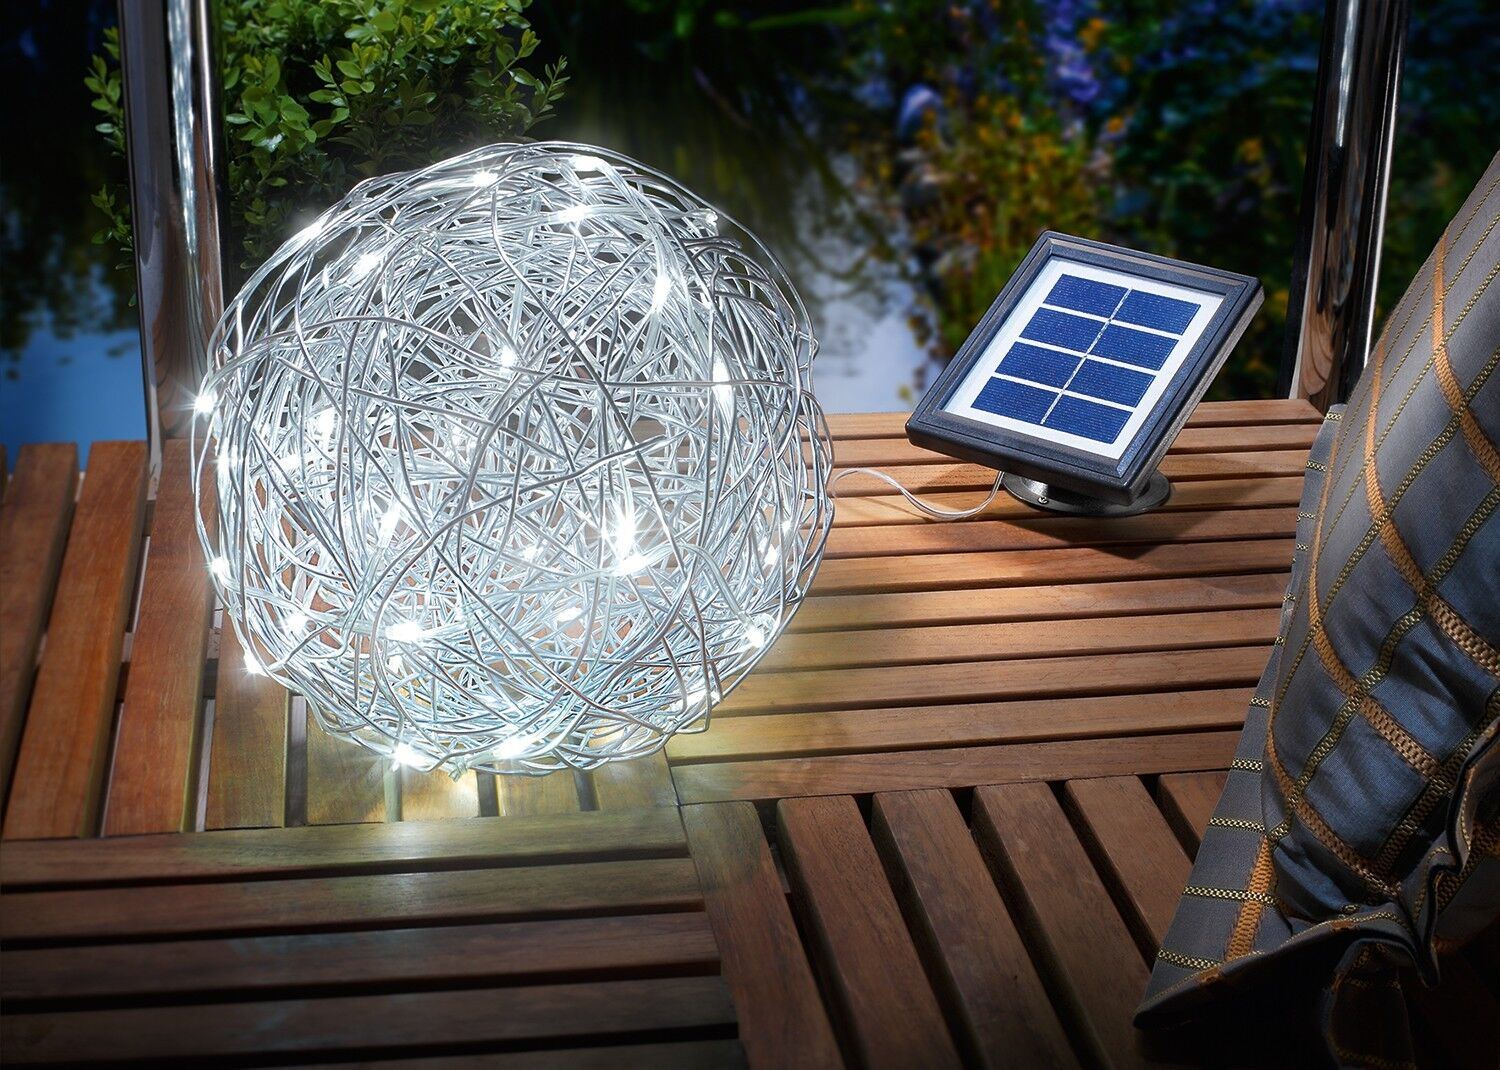 25cm led solar drahtkugel solarkugel solarleuchte gartenleuchte leuchtkugel neu eur 51 95. Black Bedroom Furniture Sets. Home Design Ideas